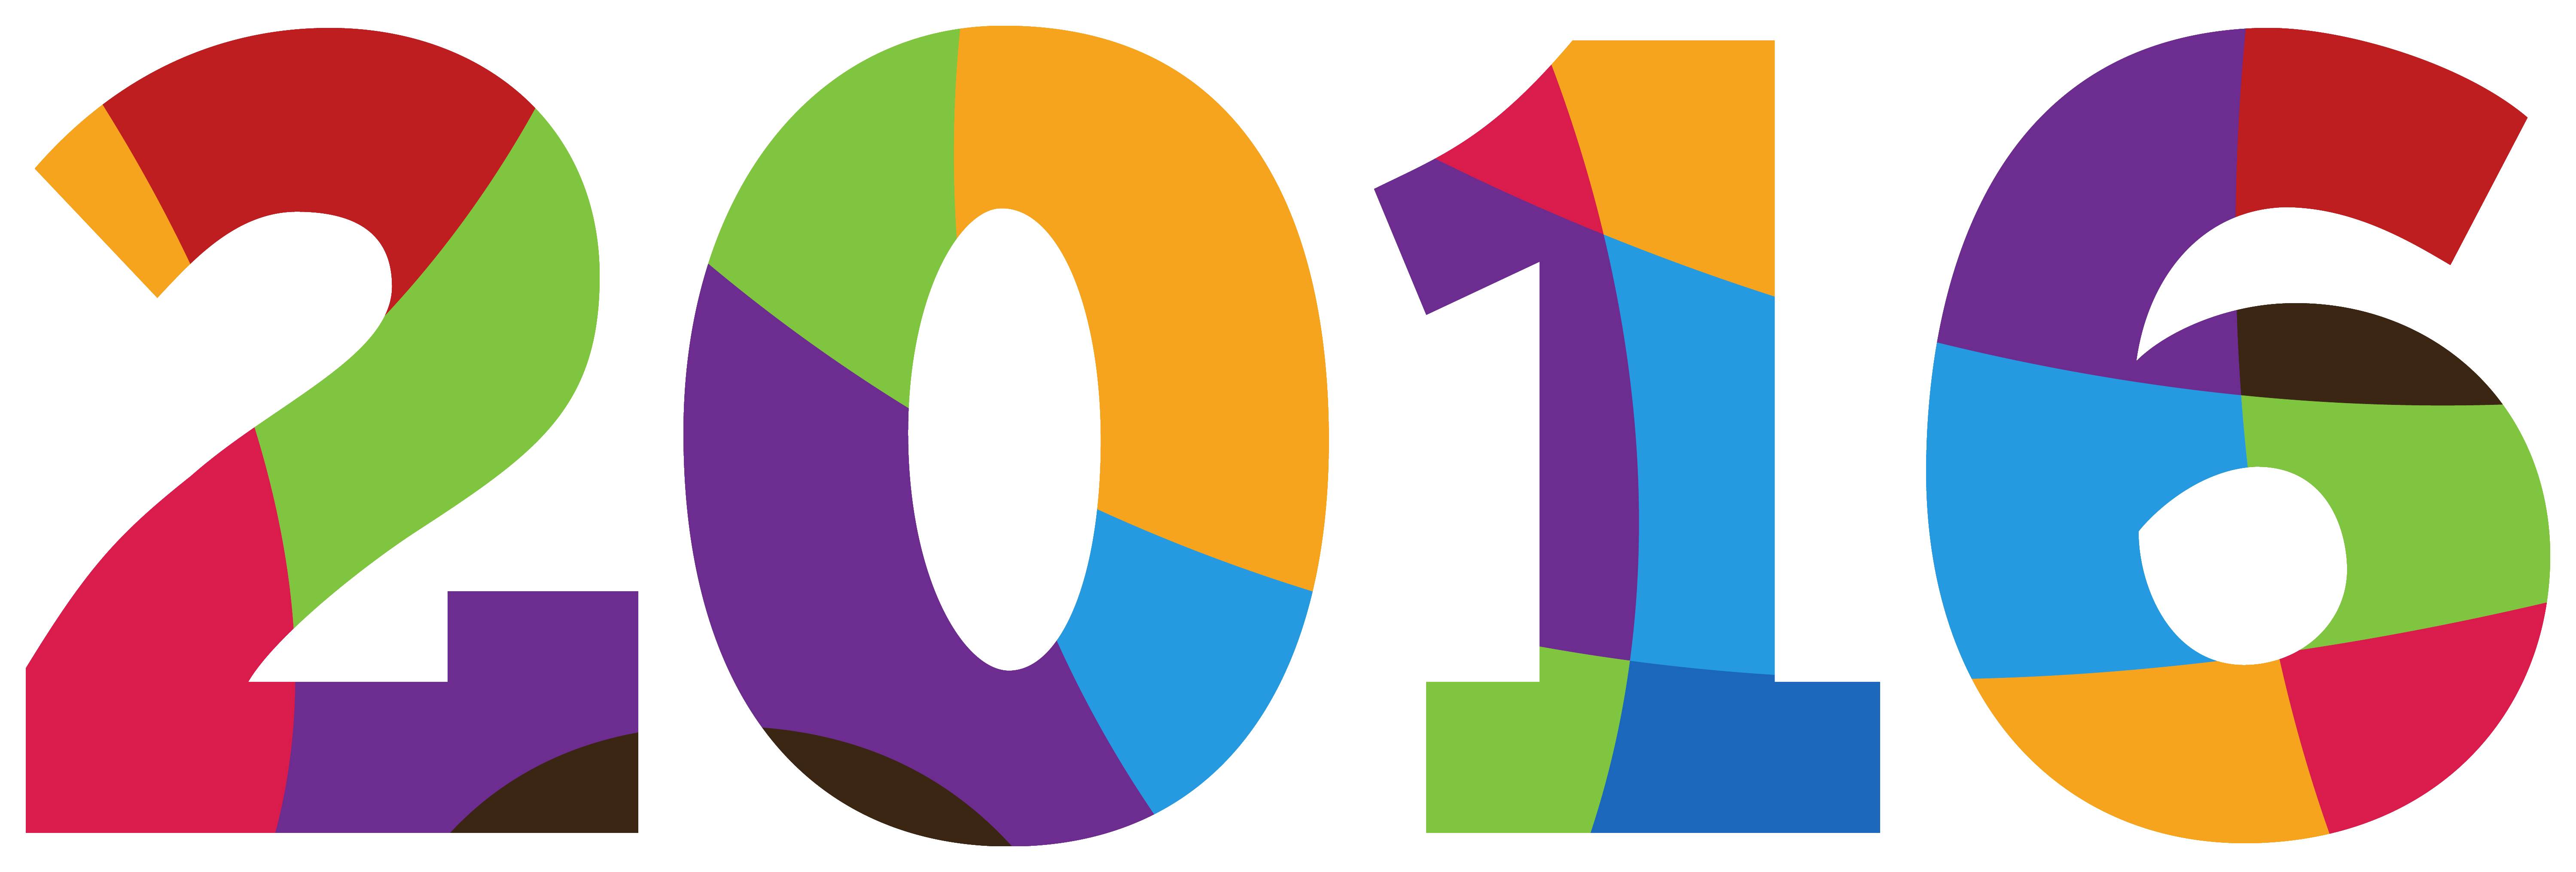 Colorful 2016 PNG Clipart Image.